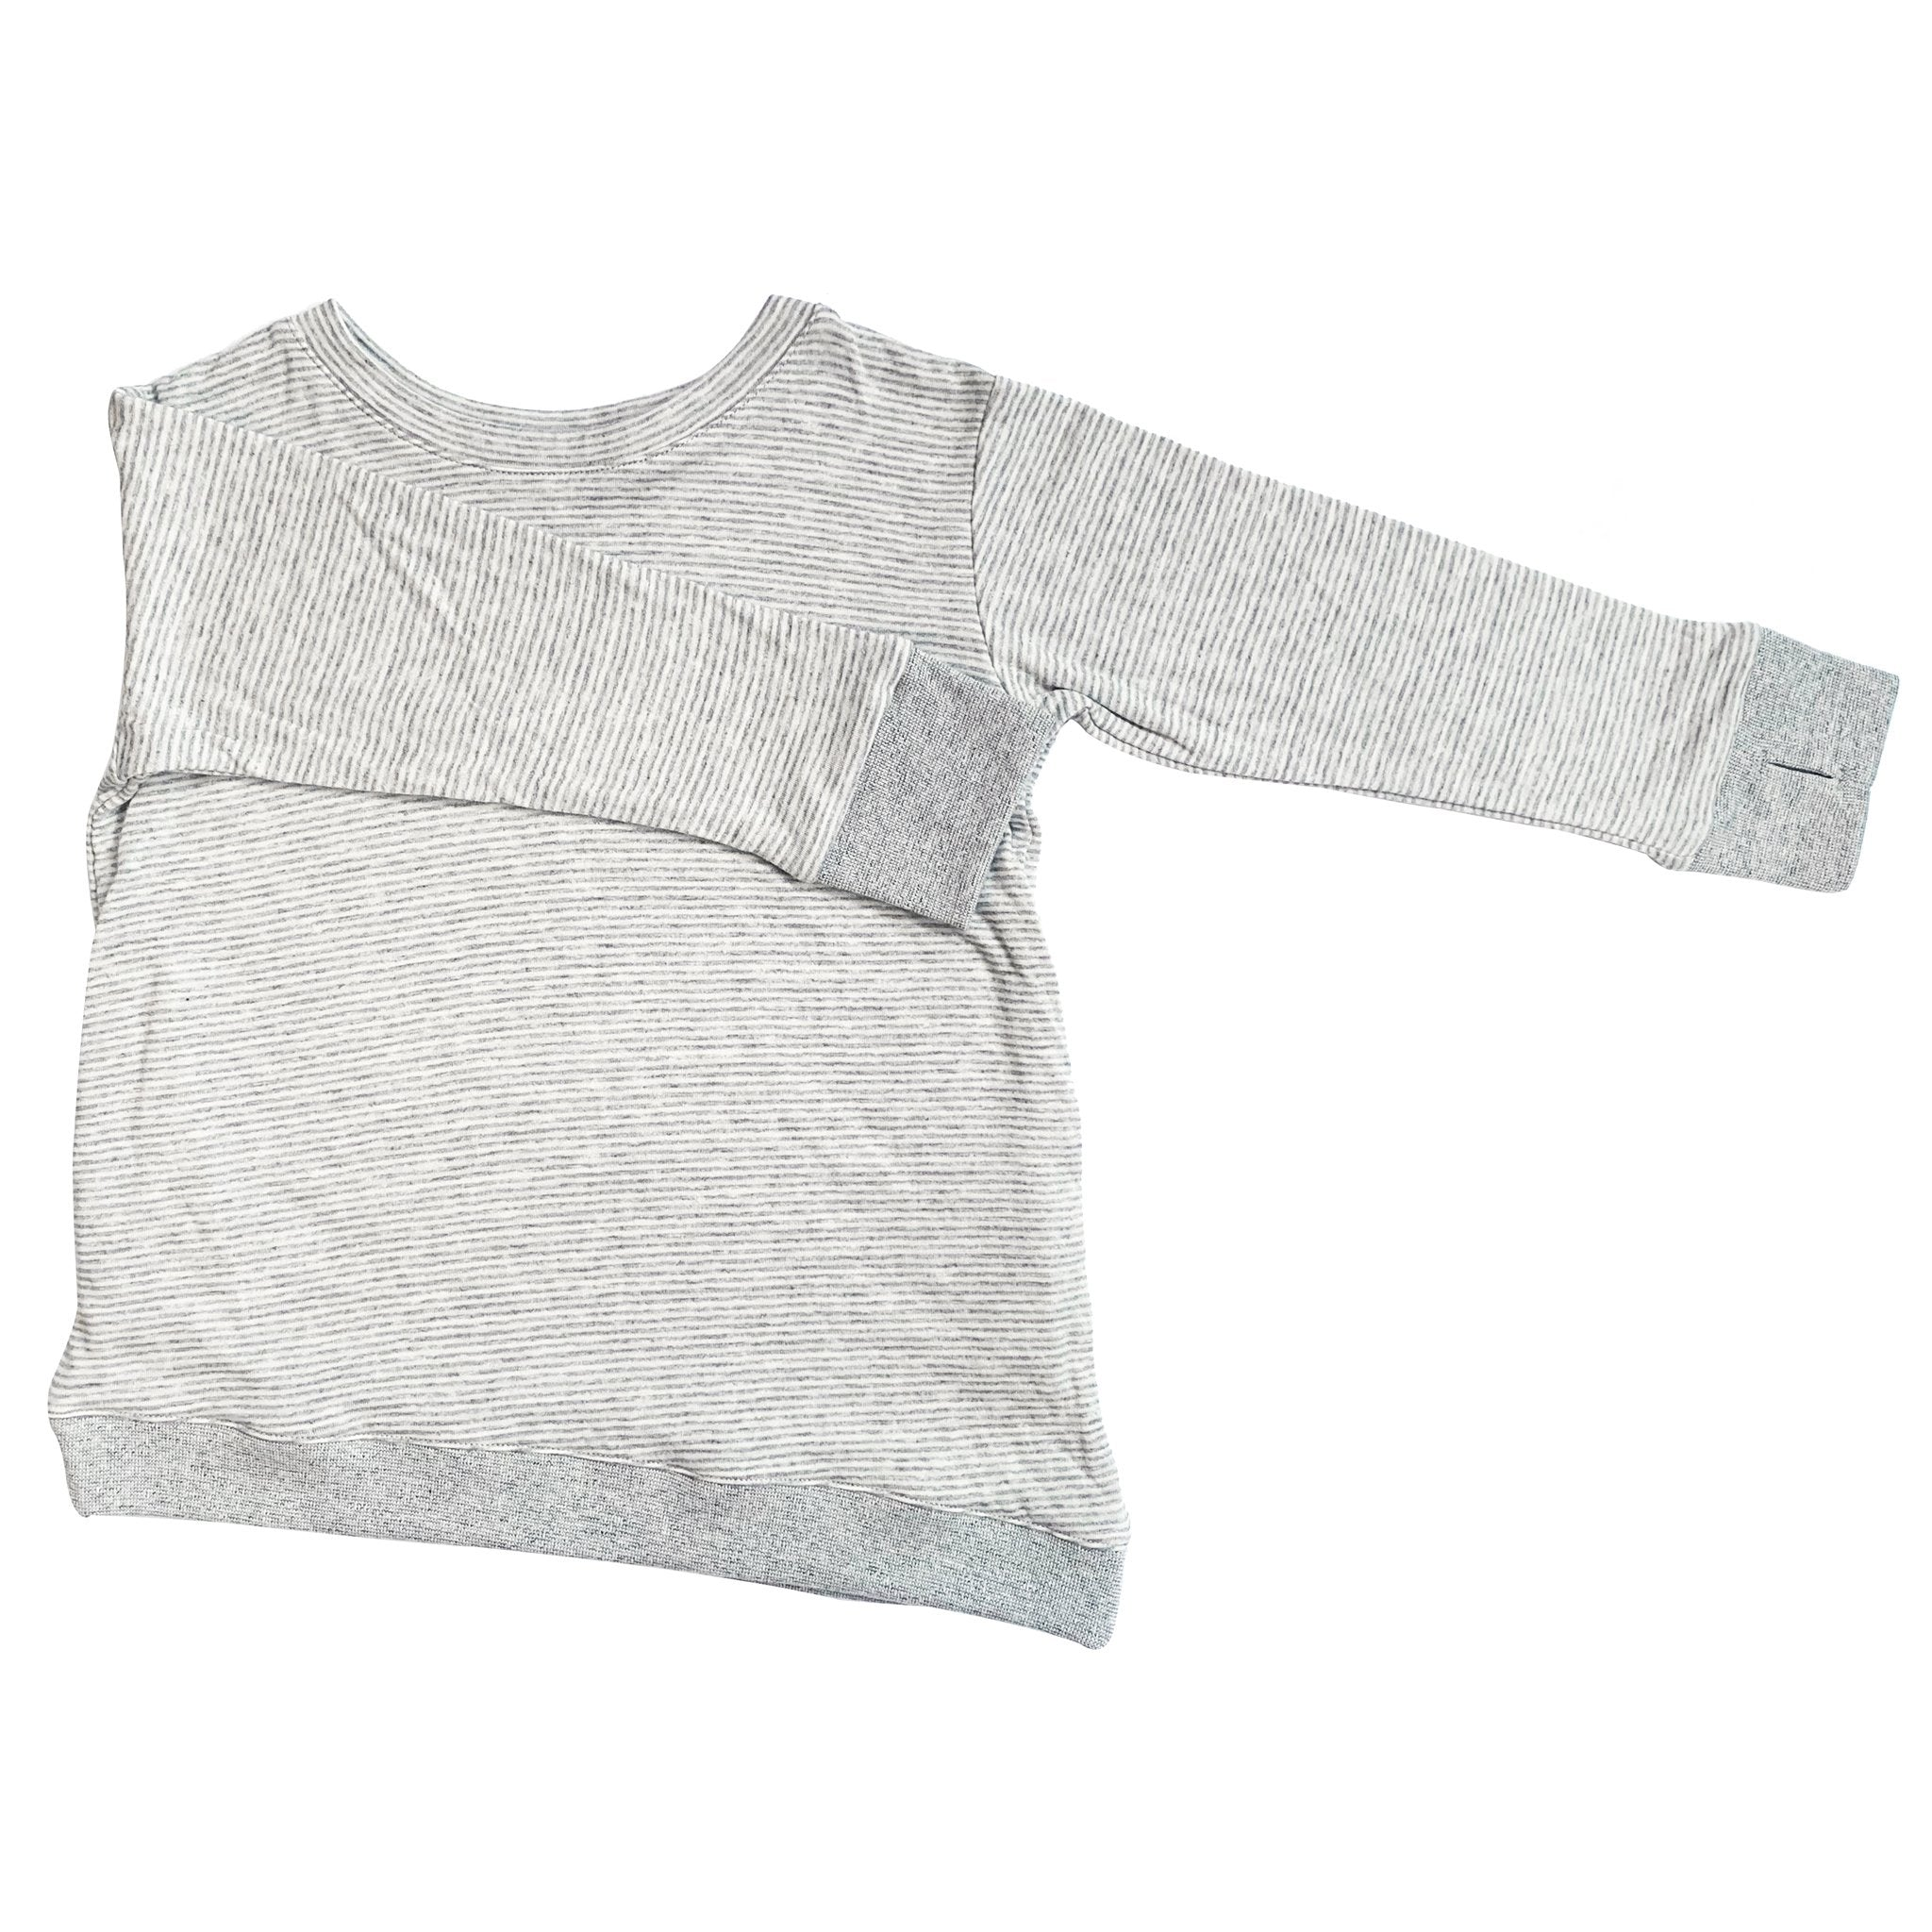 Asymmetric Pullover - Grey Skinny Stripes - Youth